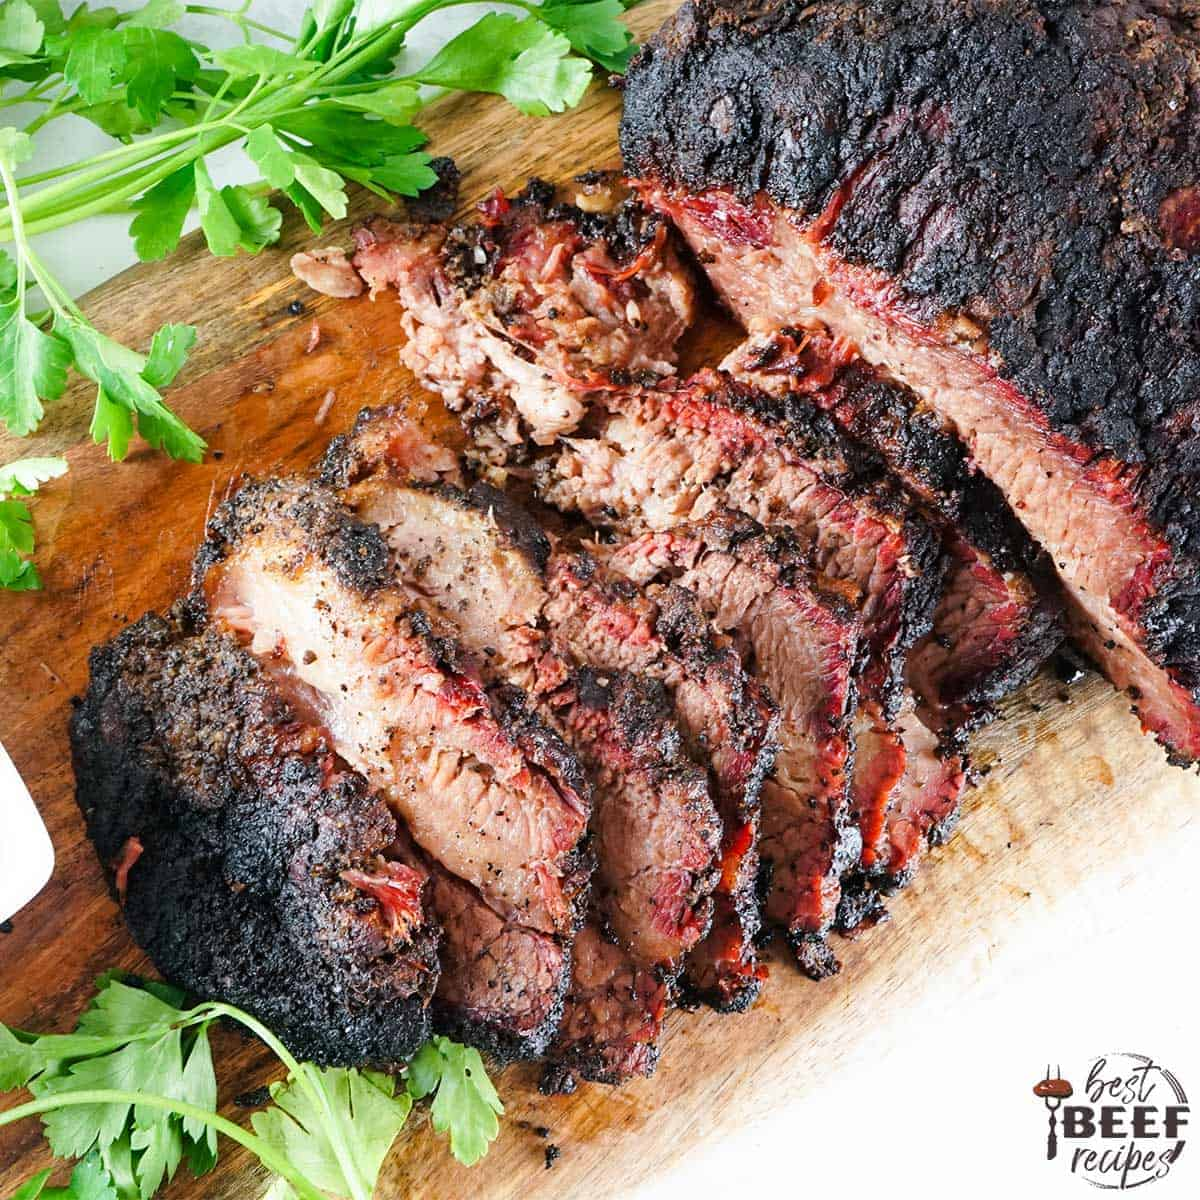 sliced smoked brisket on a cutting board